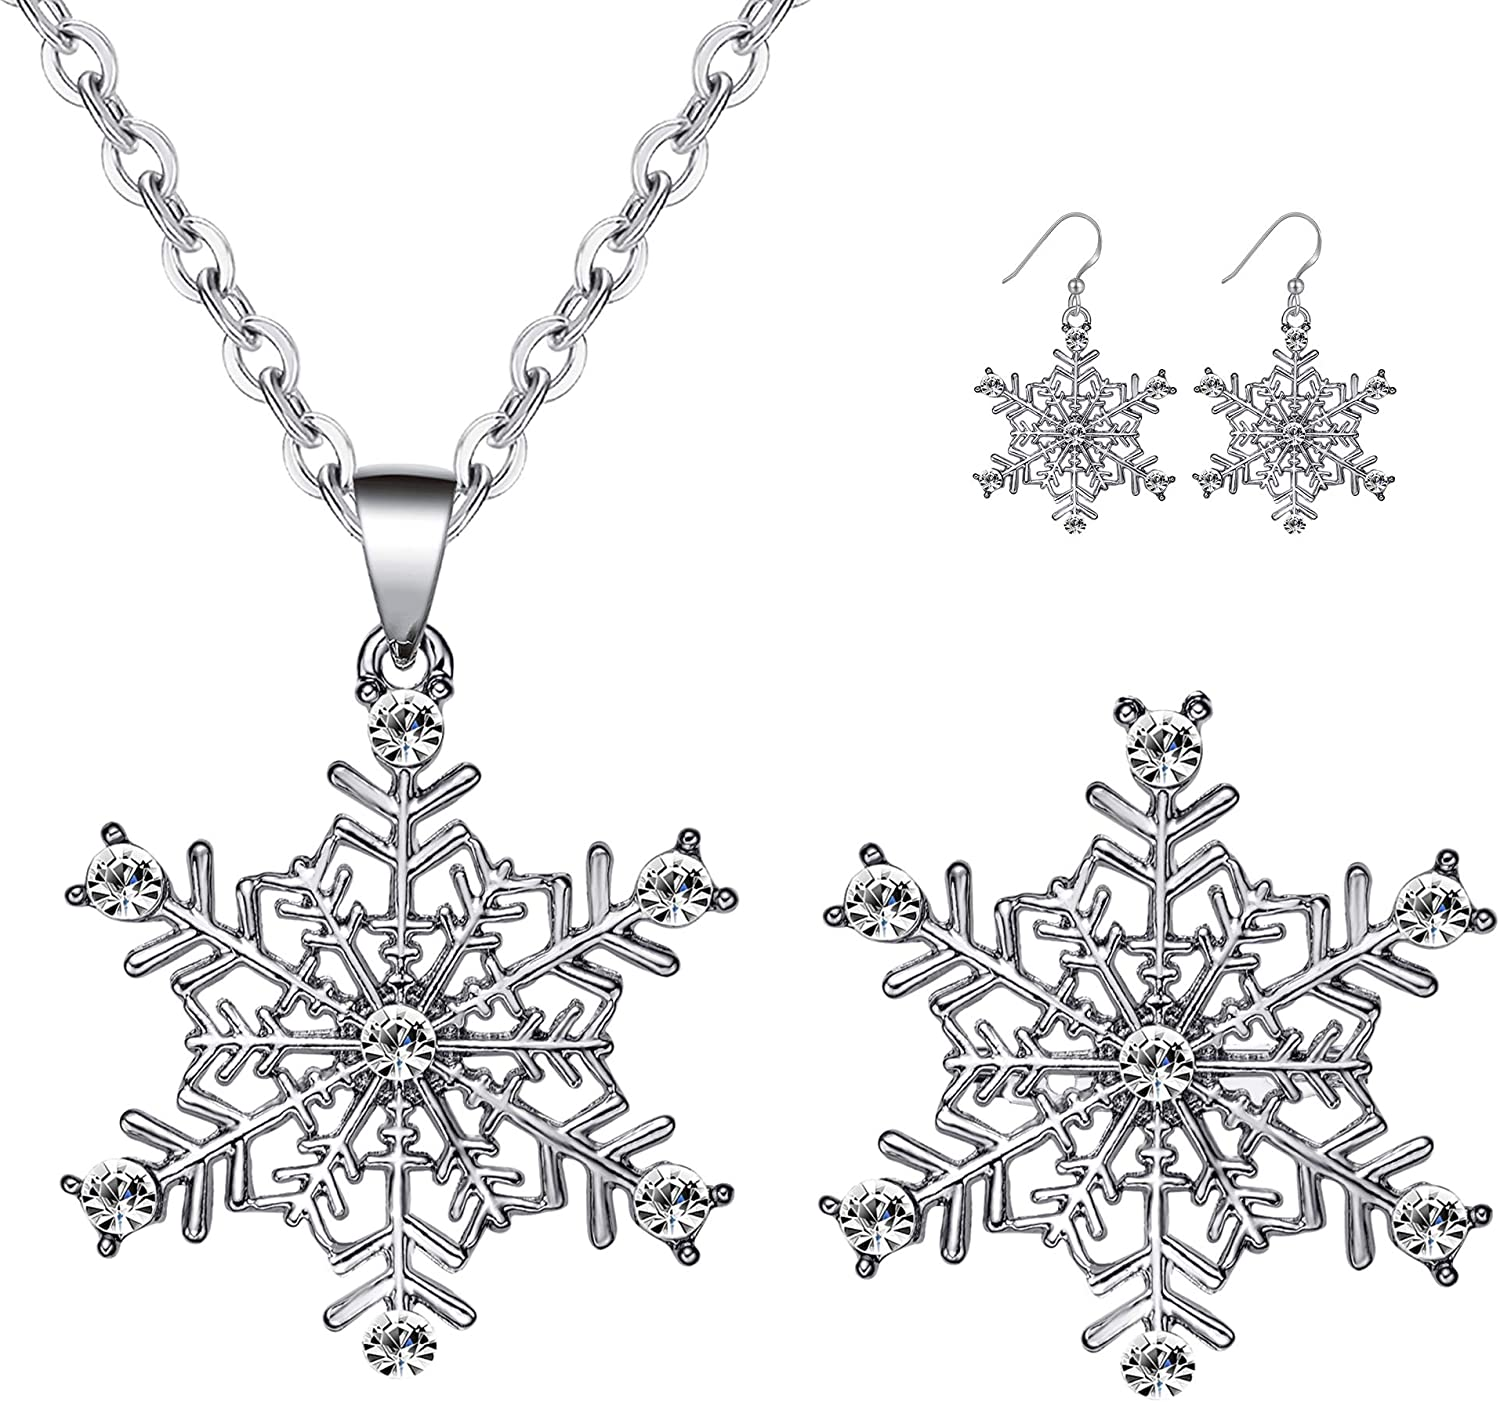 MMIRACULOUS GARDEN 3-5 Pack Christmas Jewelry Sets for Women Girls, Enameled Xmas Holiday Jewelry Maple Leaf Snowflake Pendant Necklace Brooches Pins Earrings Set